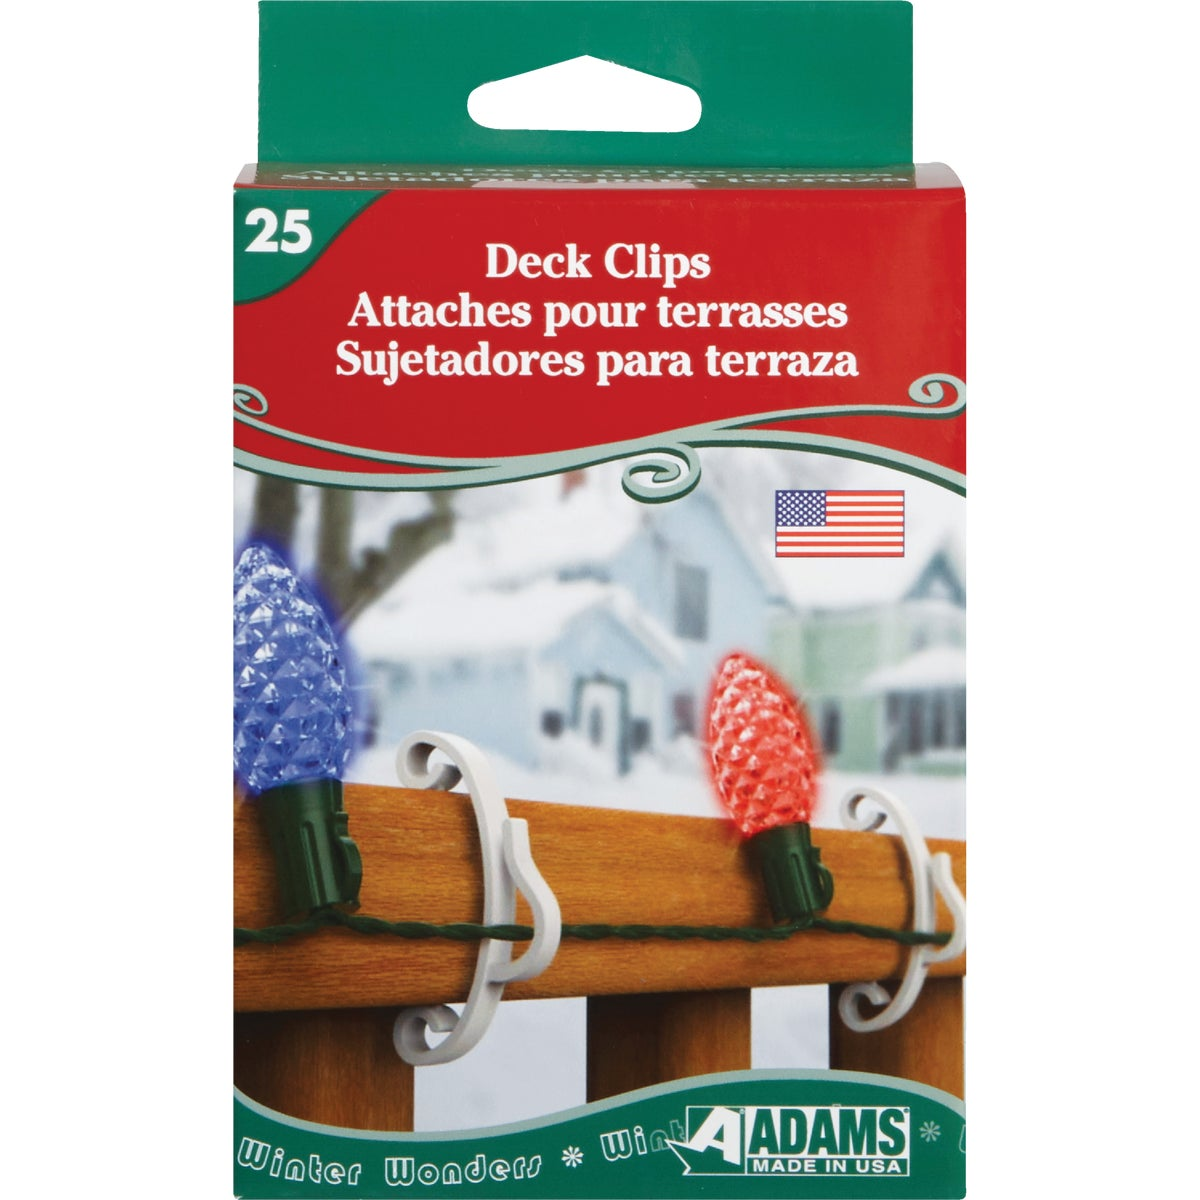 25PK DECK CLIP - 3210991040 by Adams Mfg/christmas